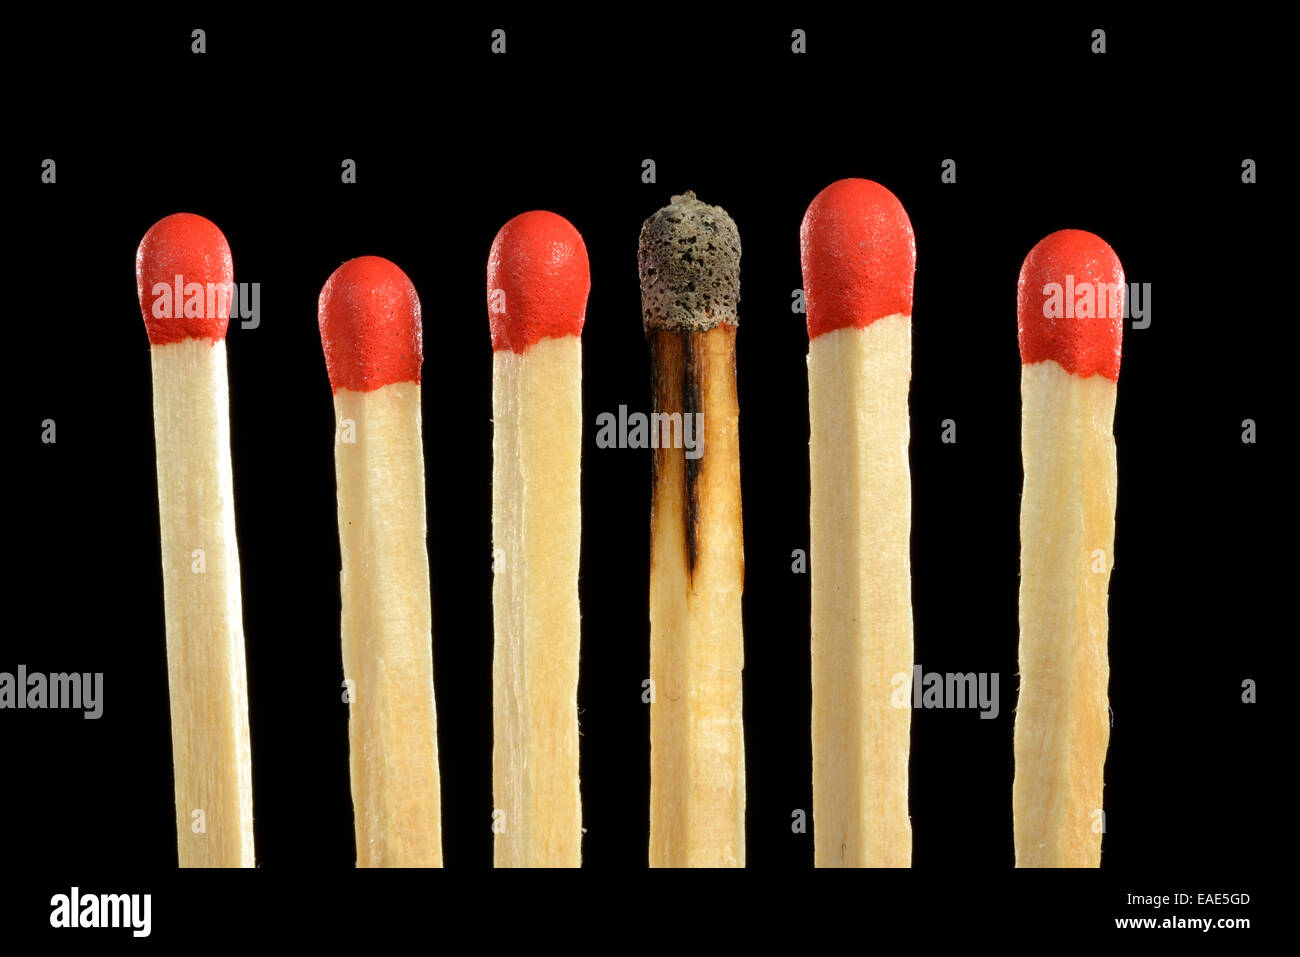 Matches with one burnt match head, symbolic image of burn-out, bullying, exclusion, loner, Germany - Stock Image